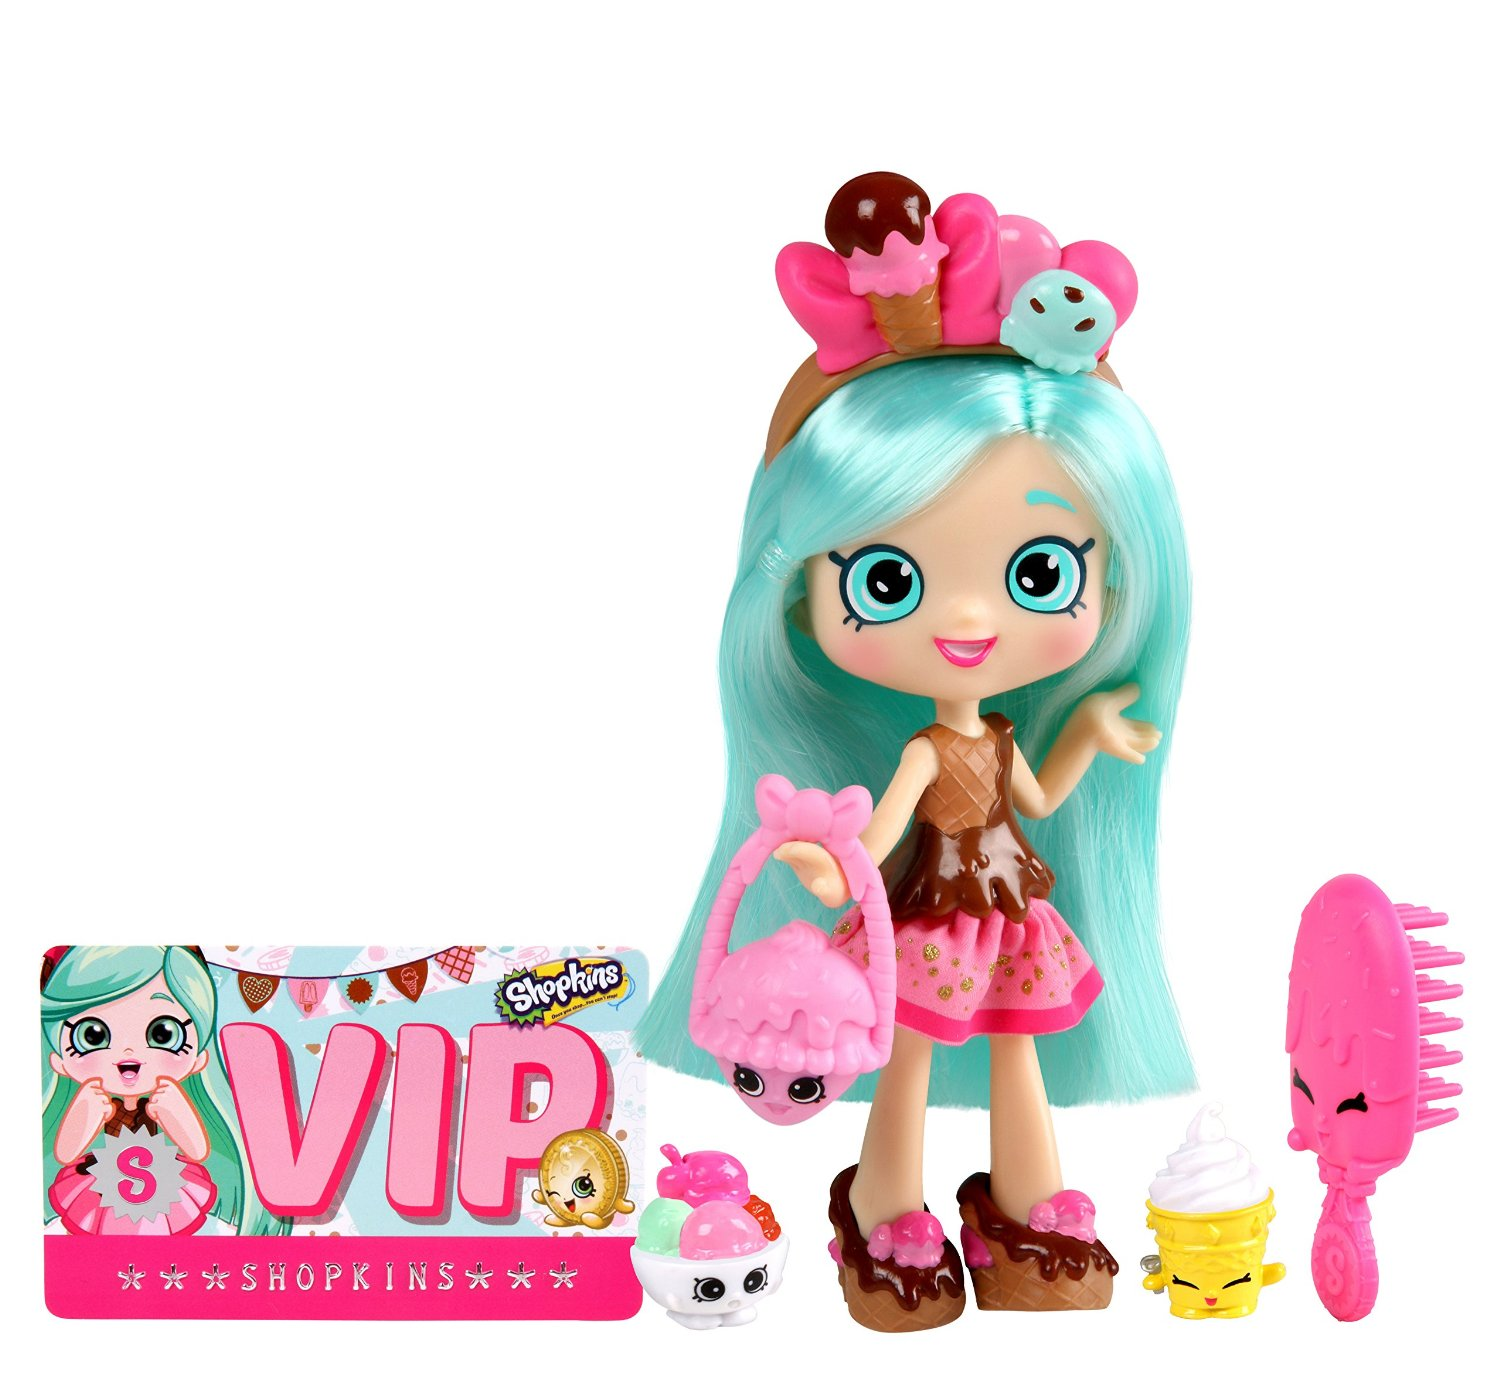 Búp bê tóc xanh Peppa-Mint Shopkins Shoppies S2 Doll Pack Peppa-Mint